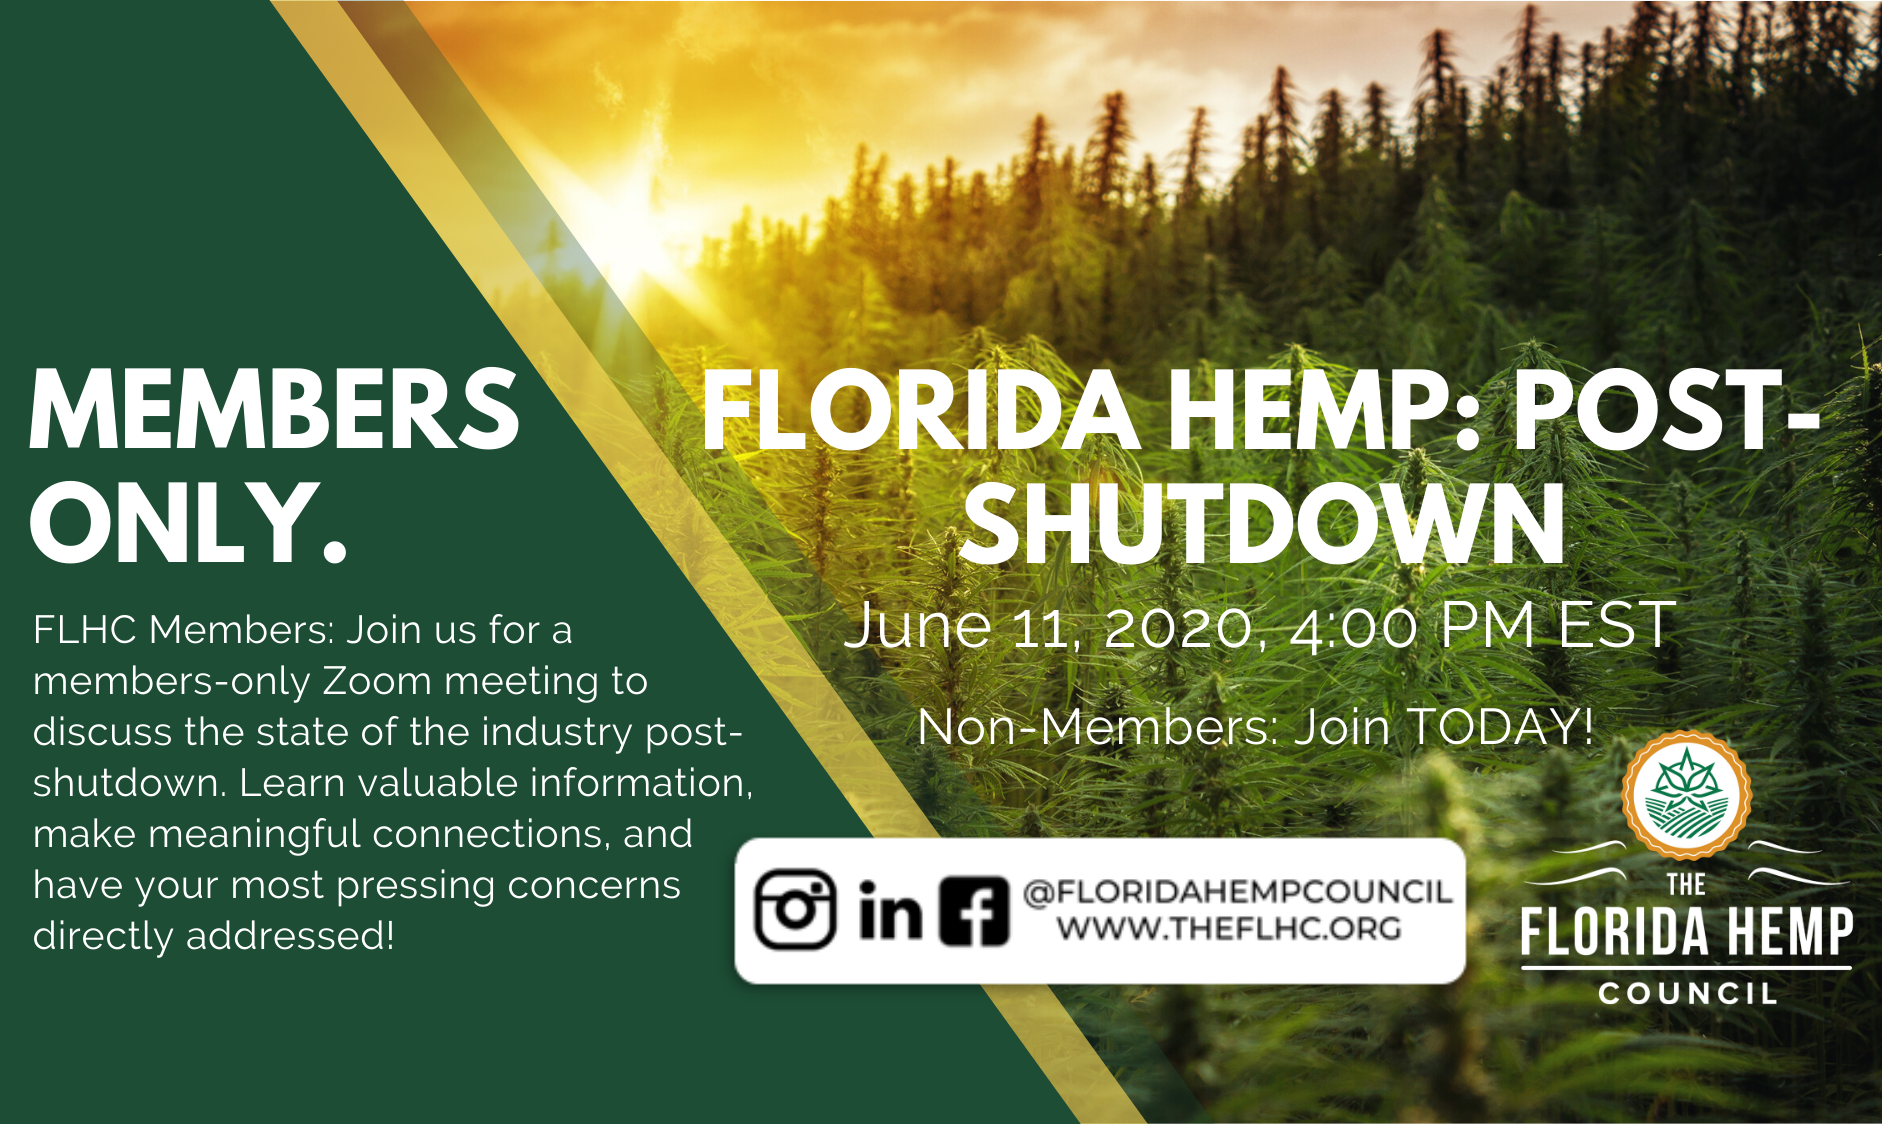 Florida Hemp: Post-Shutdown (Members Only)